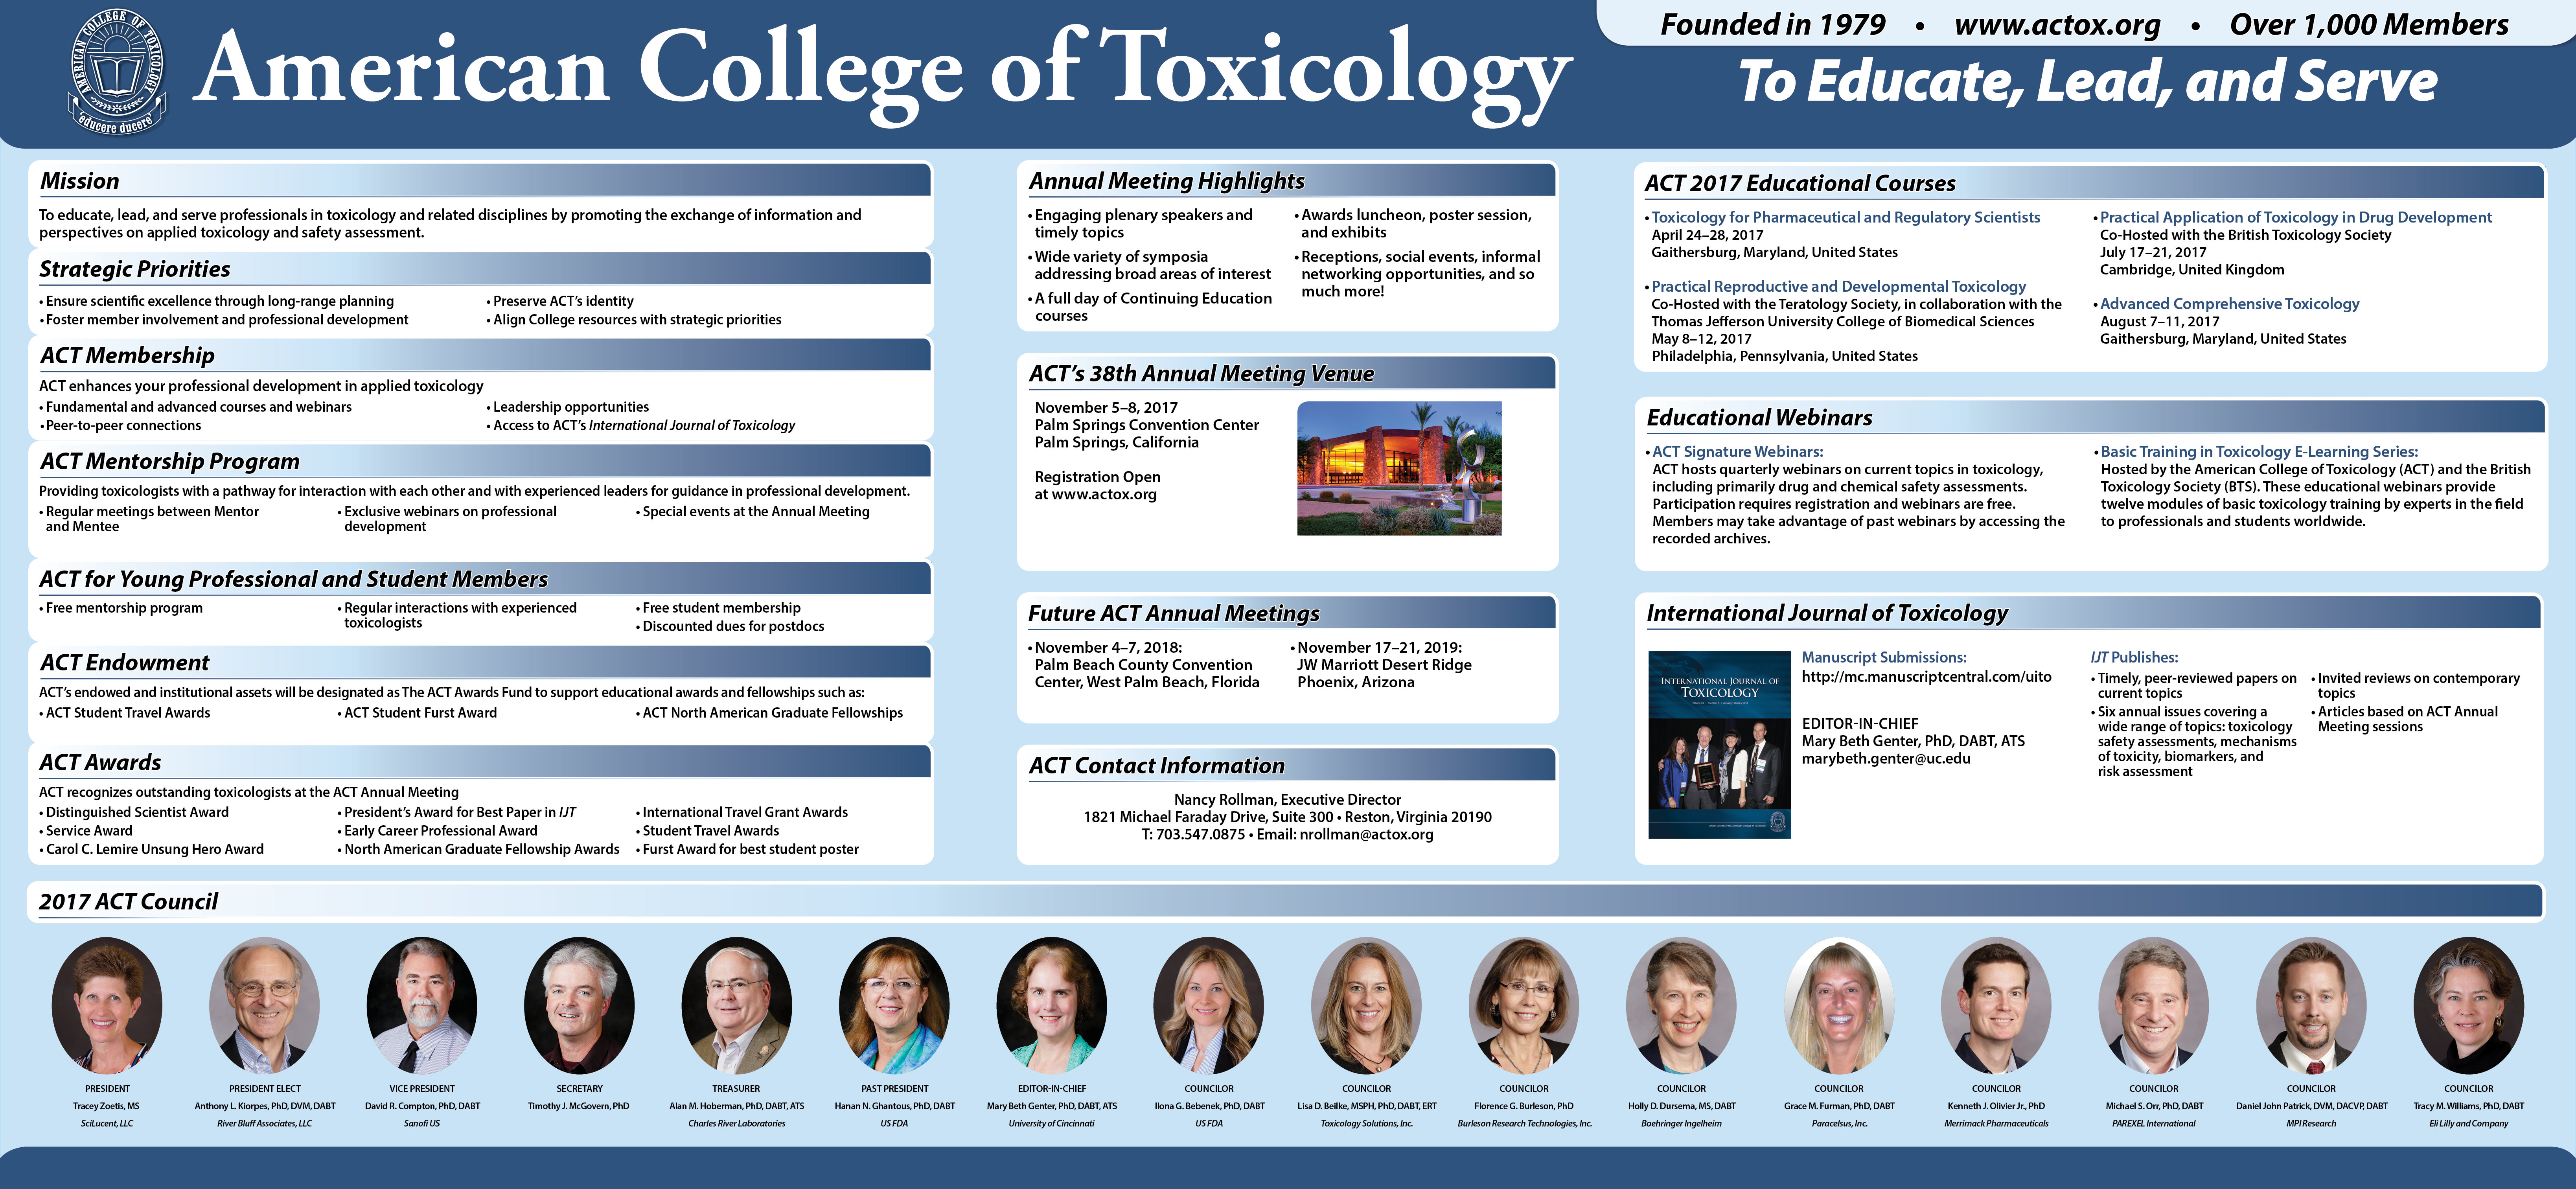 Society of Toxicology - Annual Meeting 2017